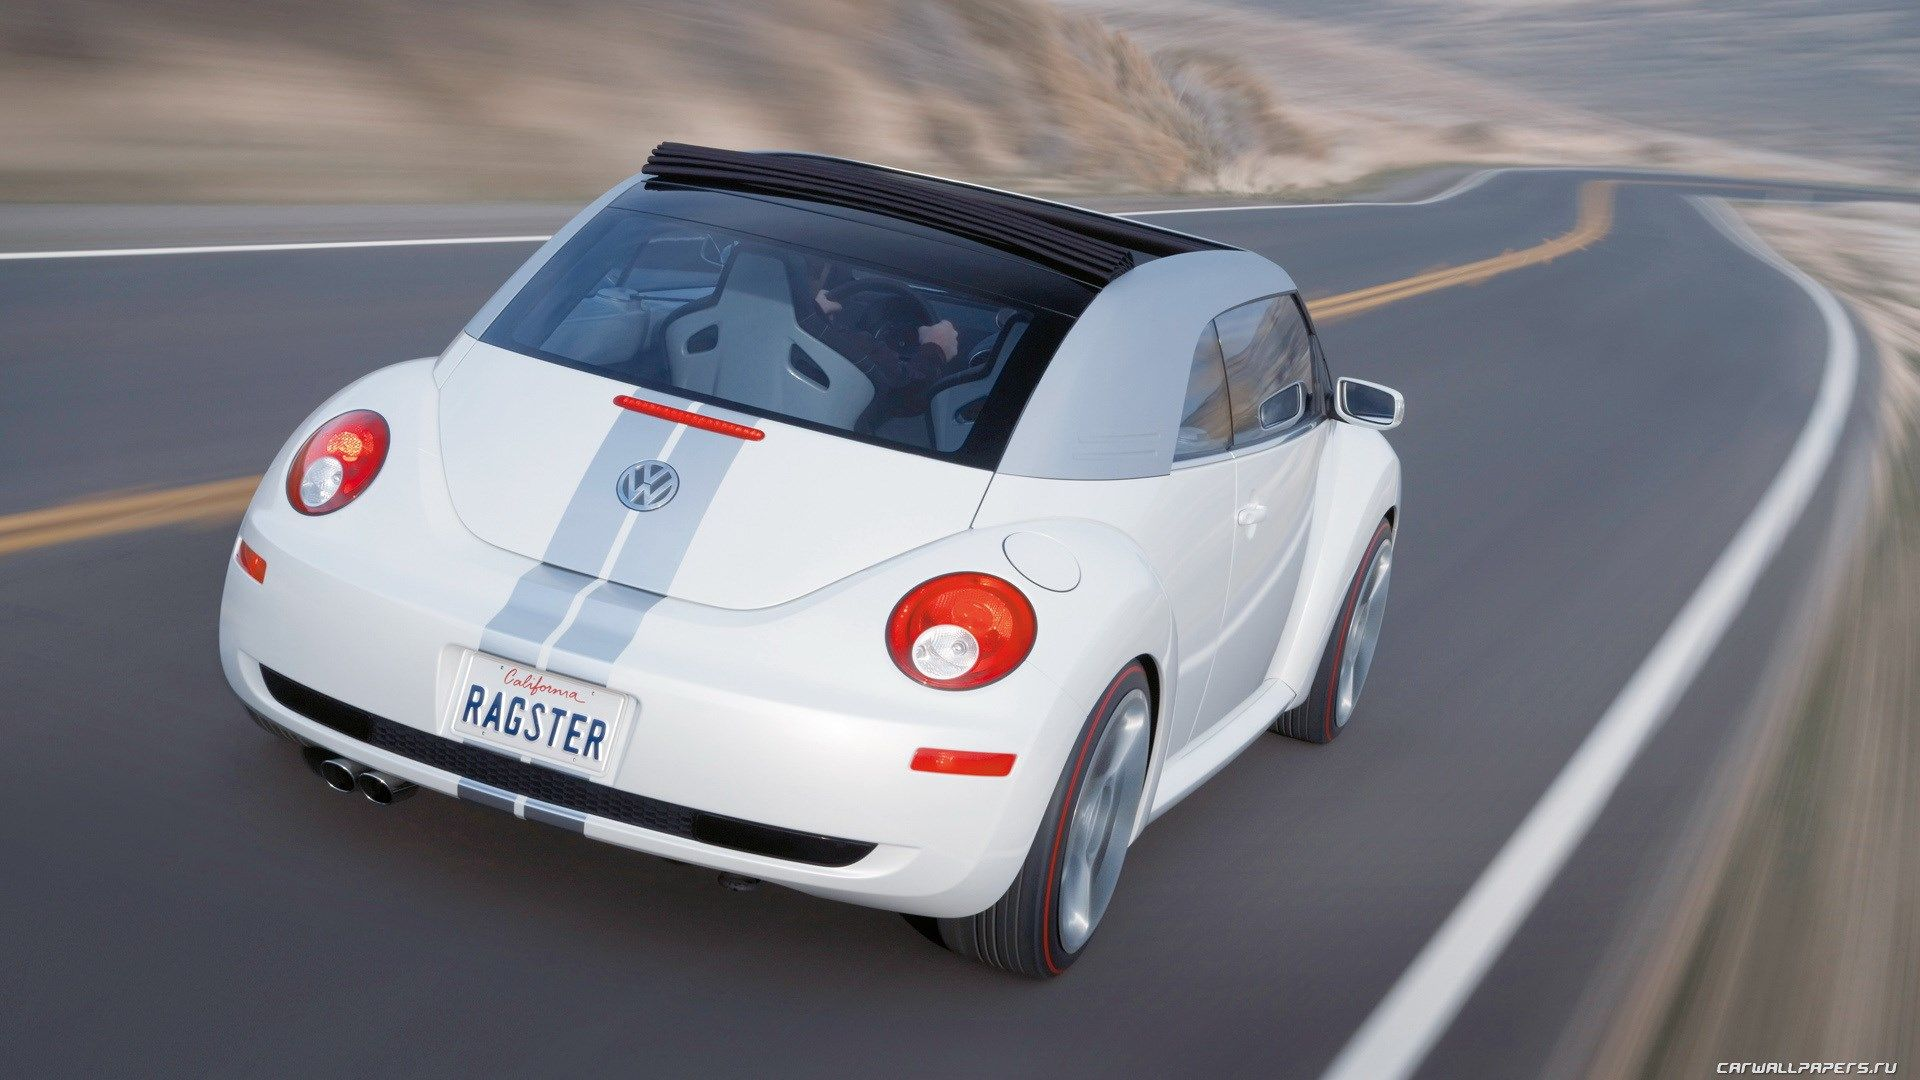 2005 volkswagen beetle ragster picture desktop by chase brian